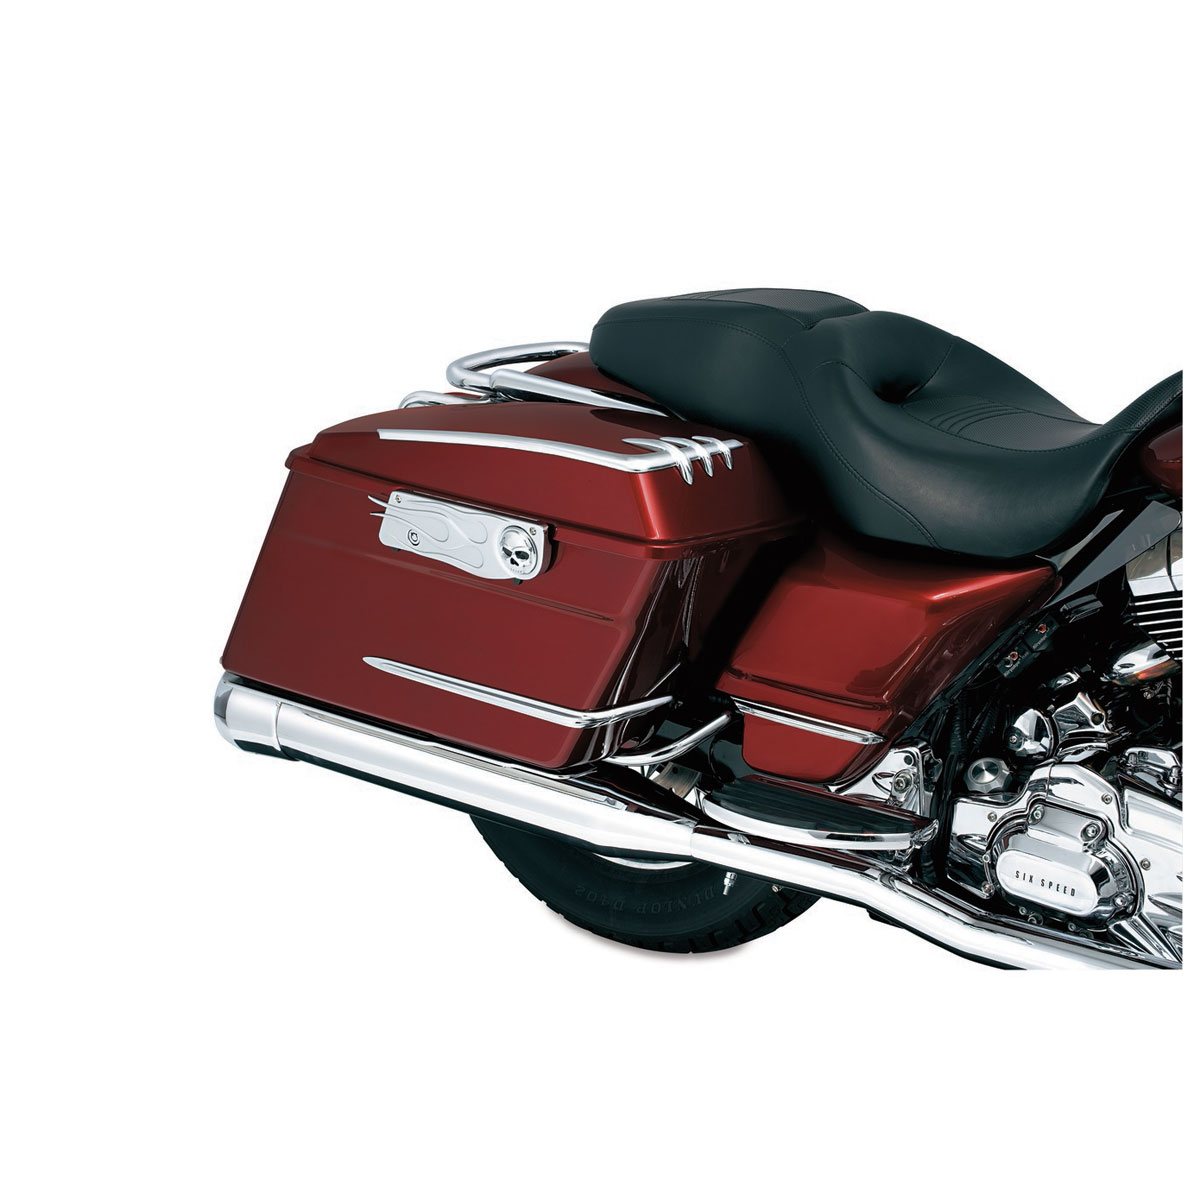 Kuryakyn Saddlebag Lid Accents